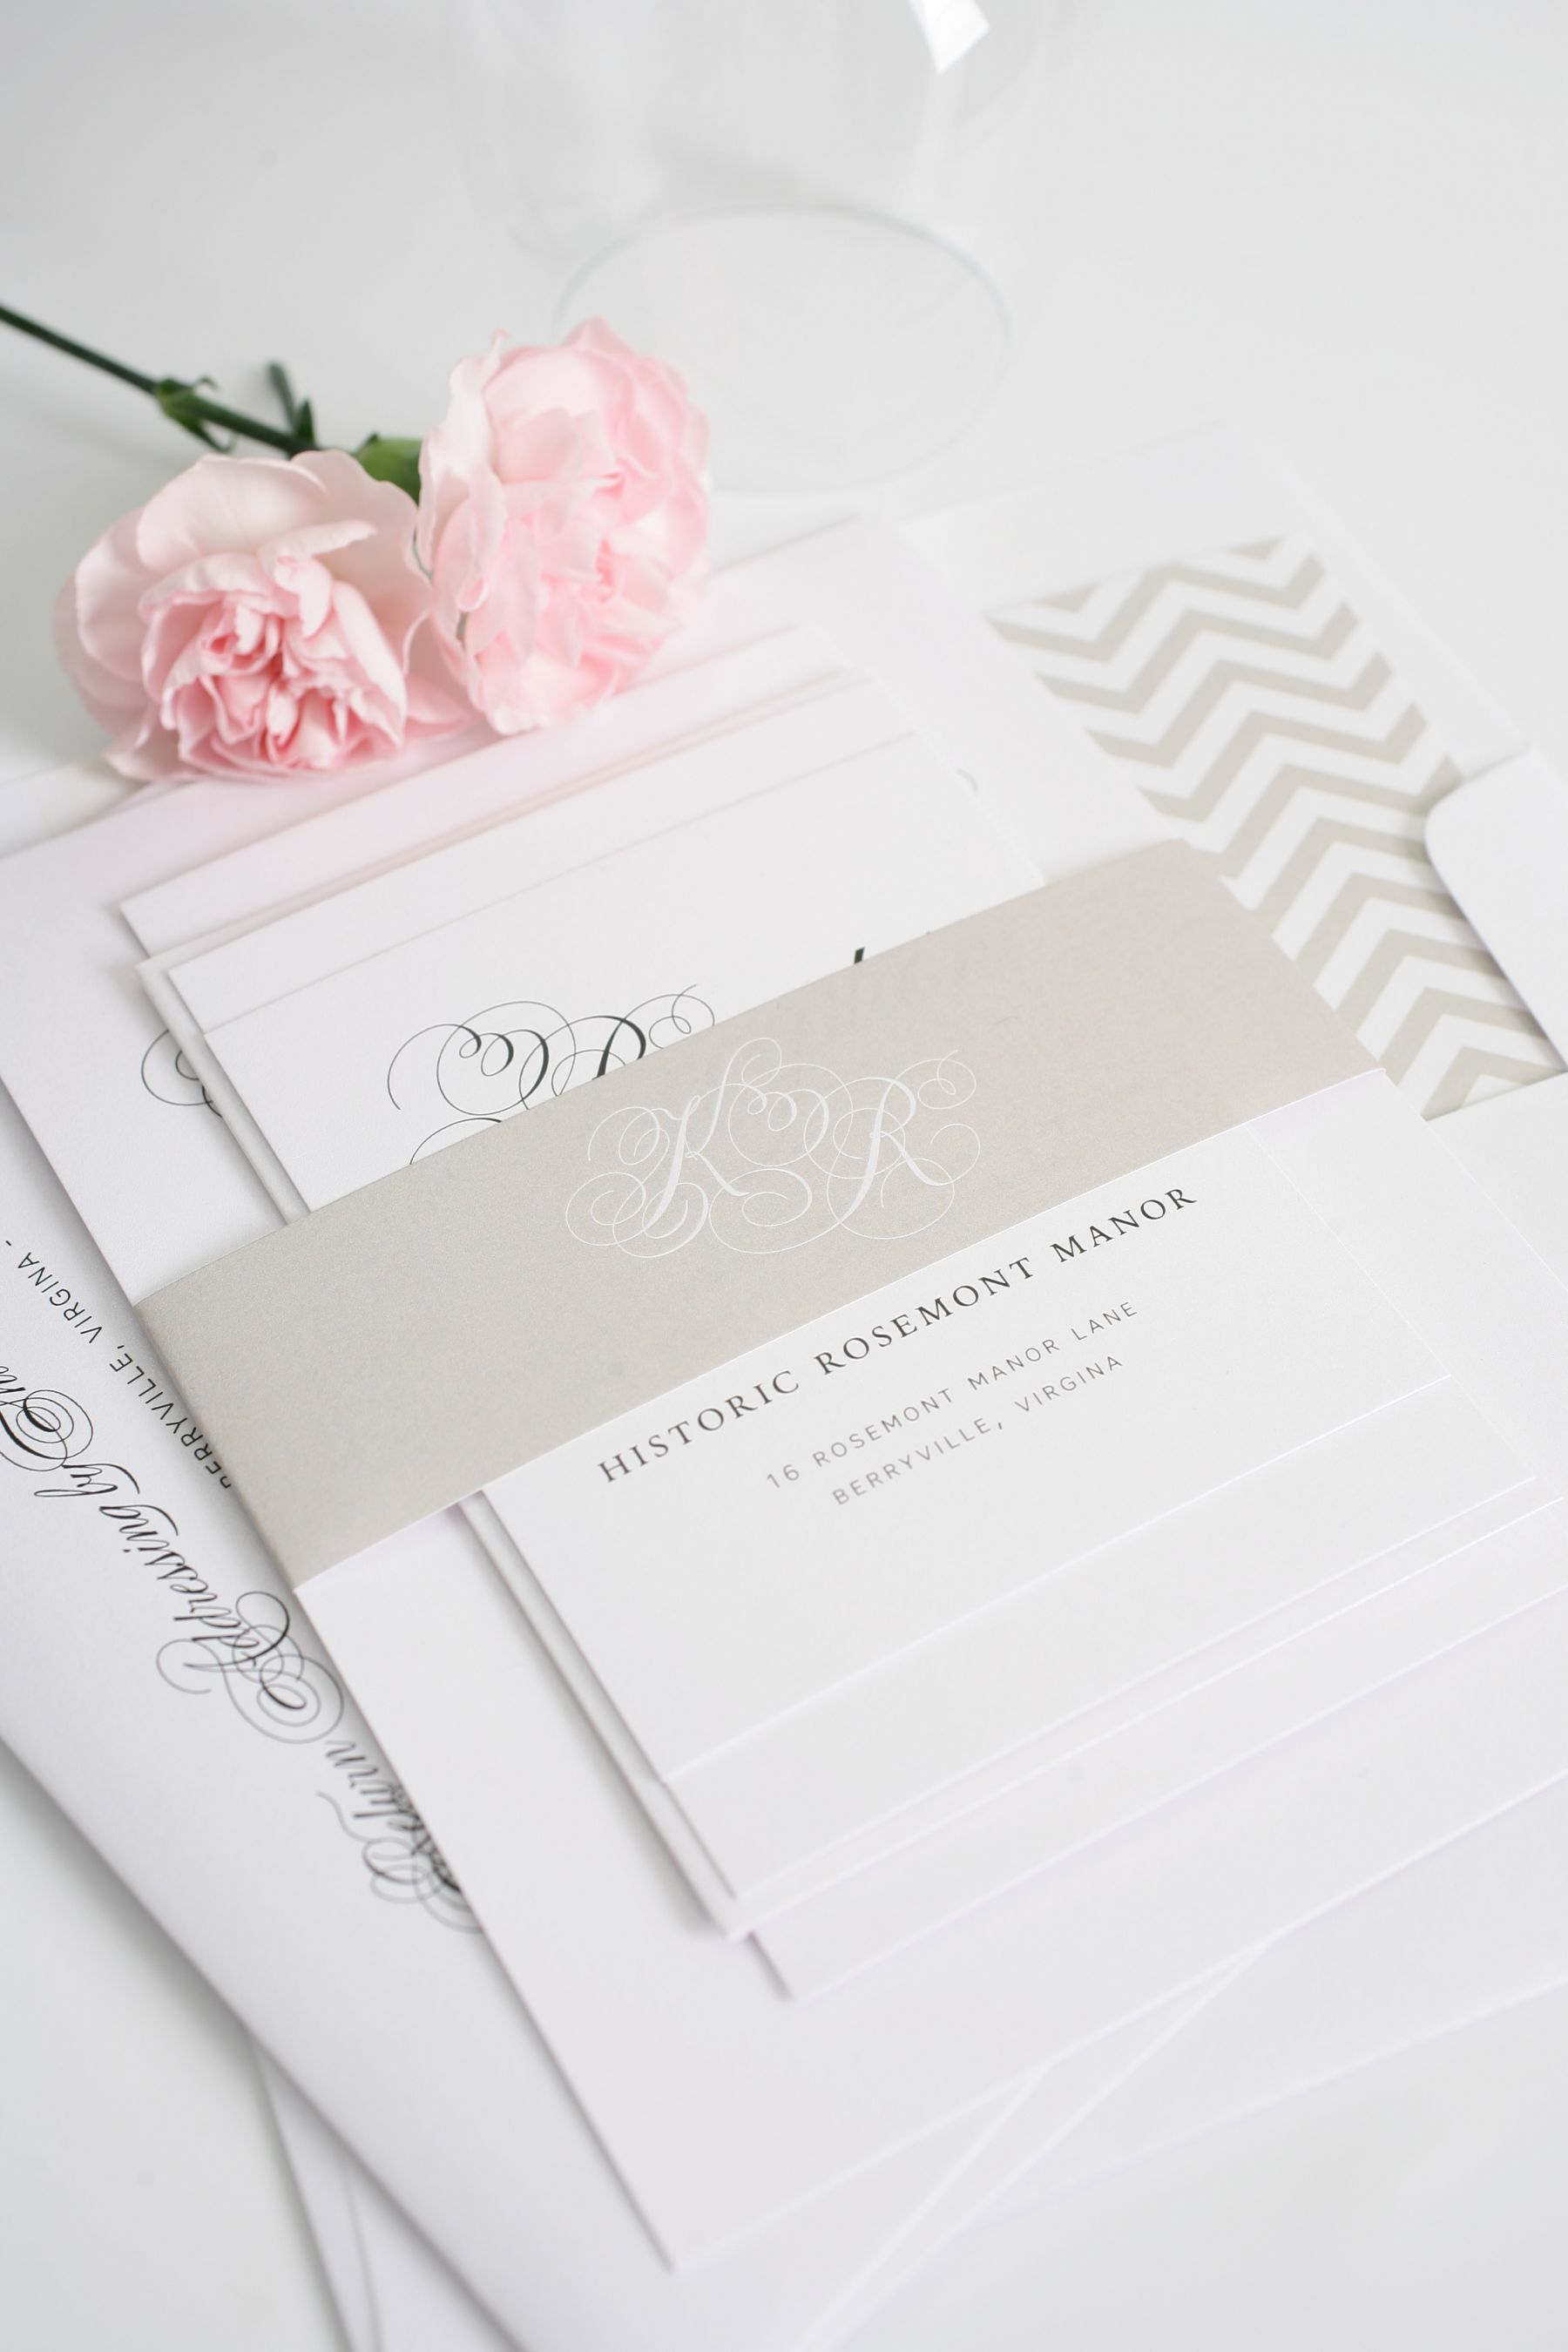 Wedding invitations with southern flare wedding invitations cream wedding invitations southern wedding invitations monicamarmolfo Image collections